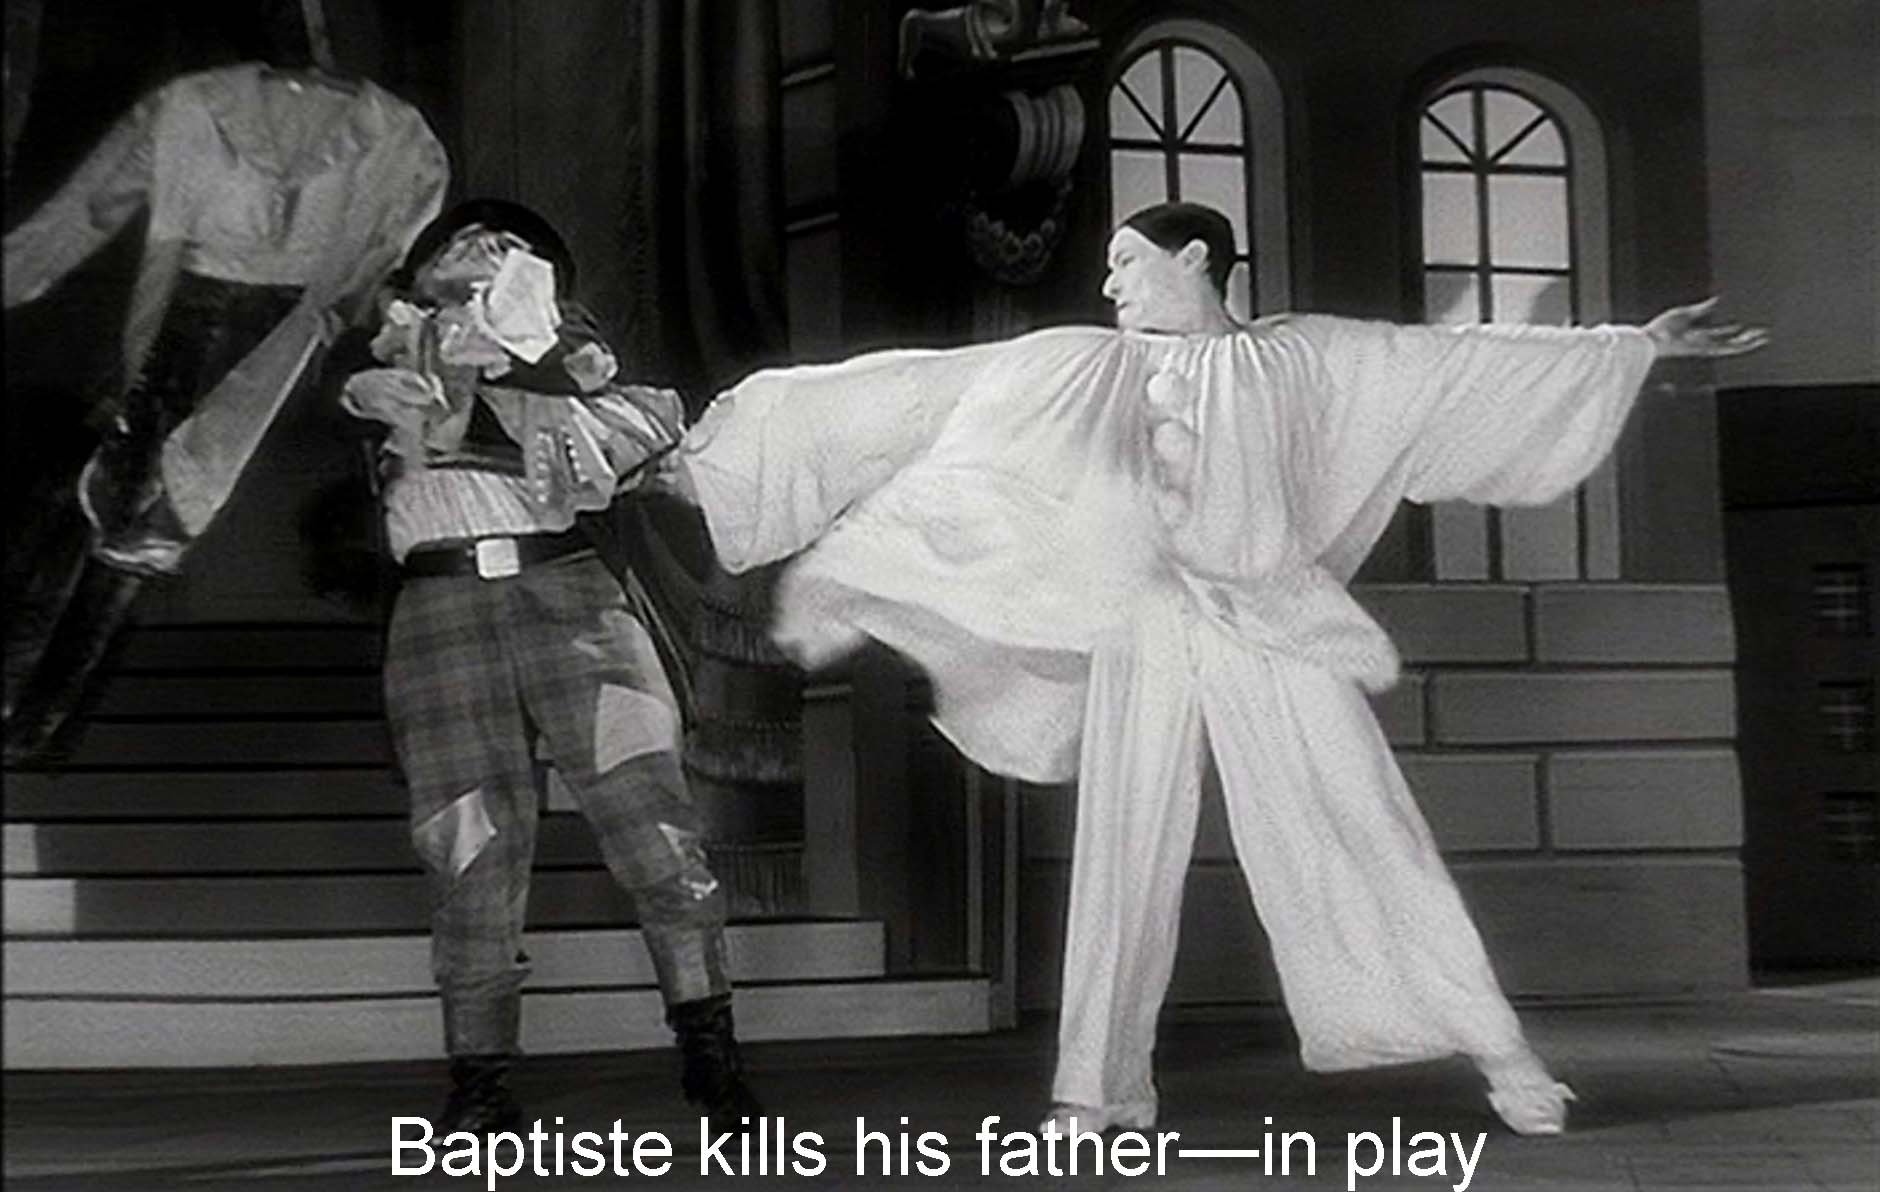 Baptiste kills his father—in play